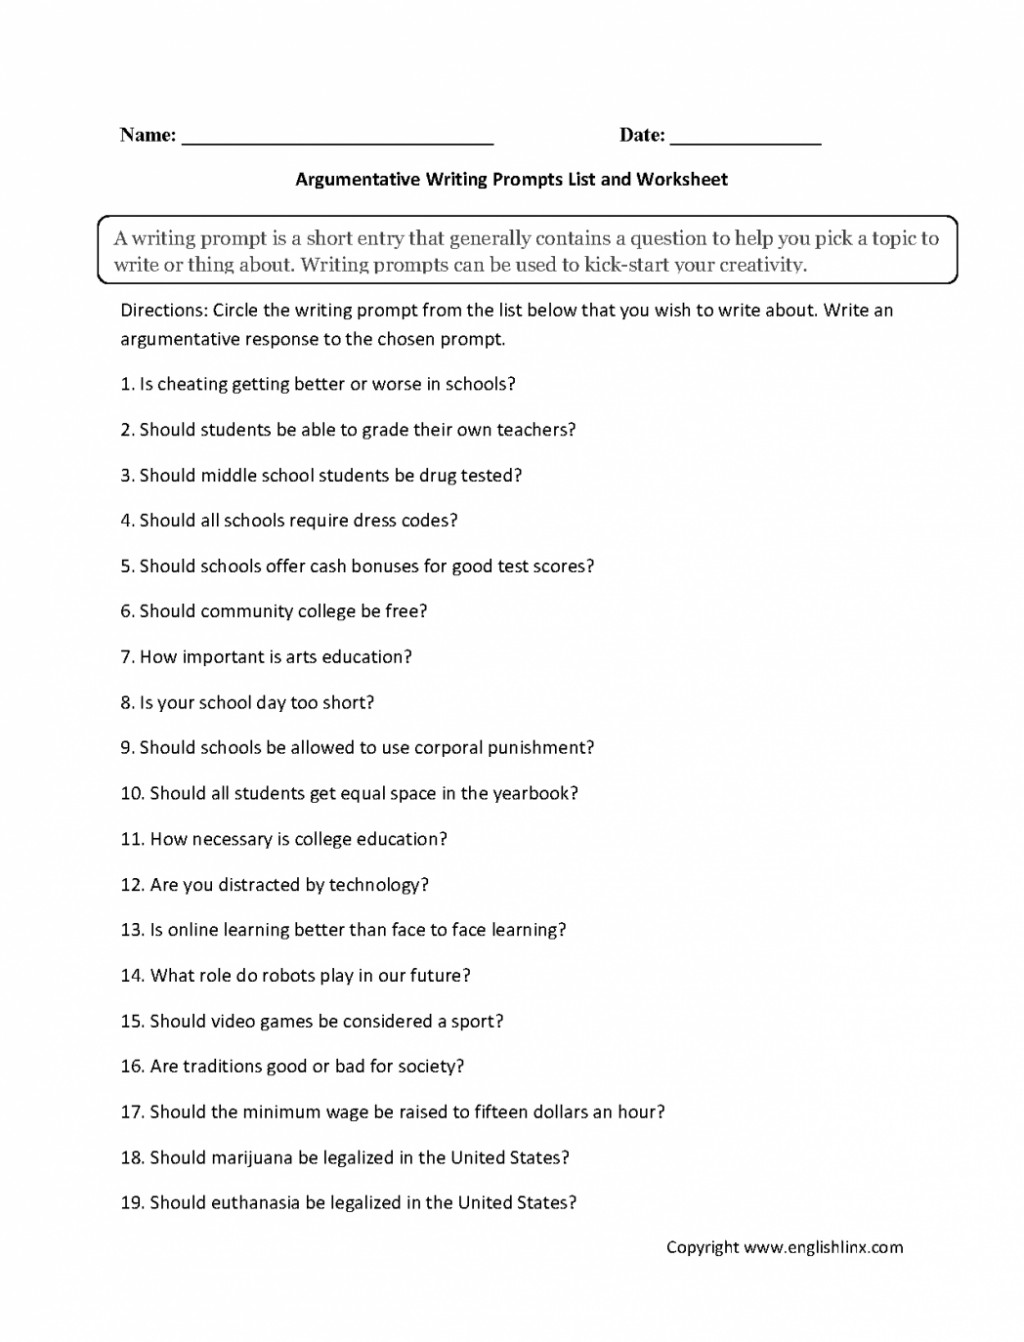 002 Essay Example Argument Prompts Goal Blockety Co Argumentative Topics Writing List Work For High School Subjects About Animals On Racism College Sports Middle Rare 7th Graders Pdf Large